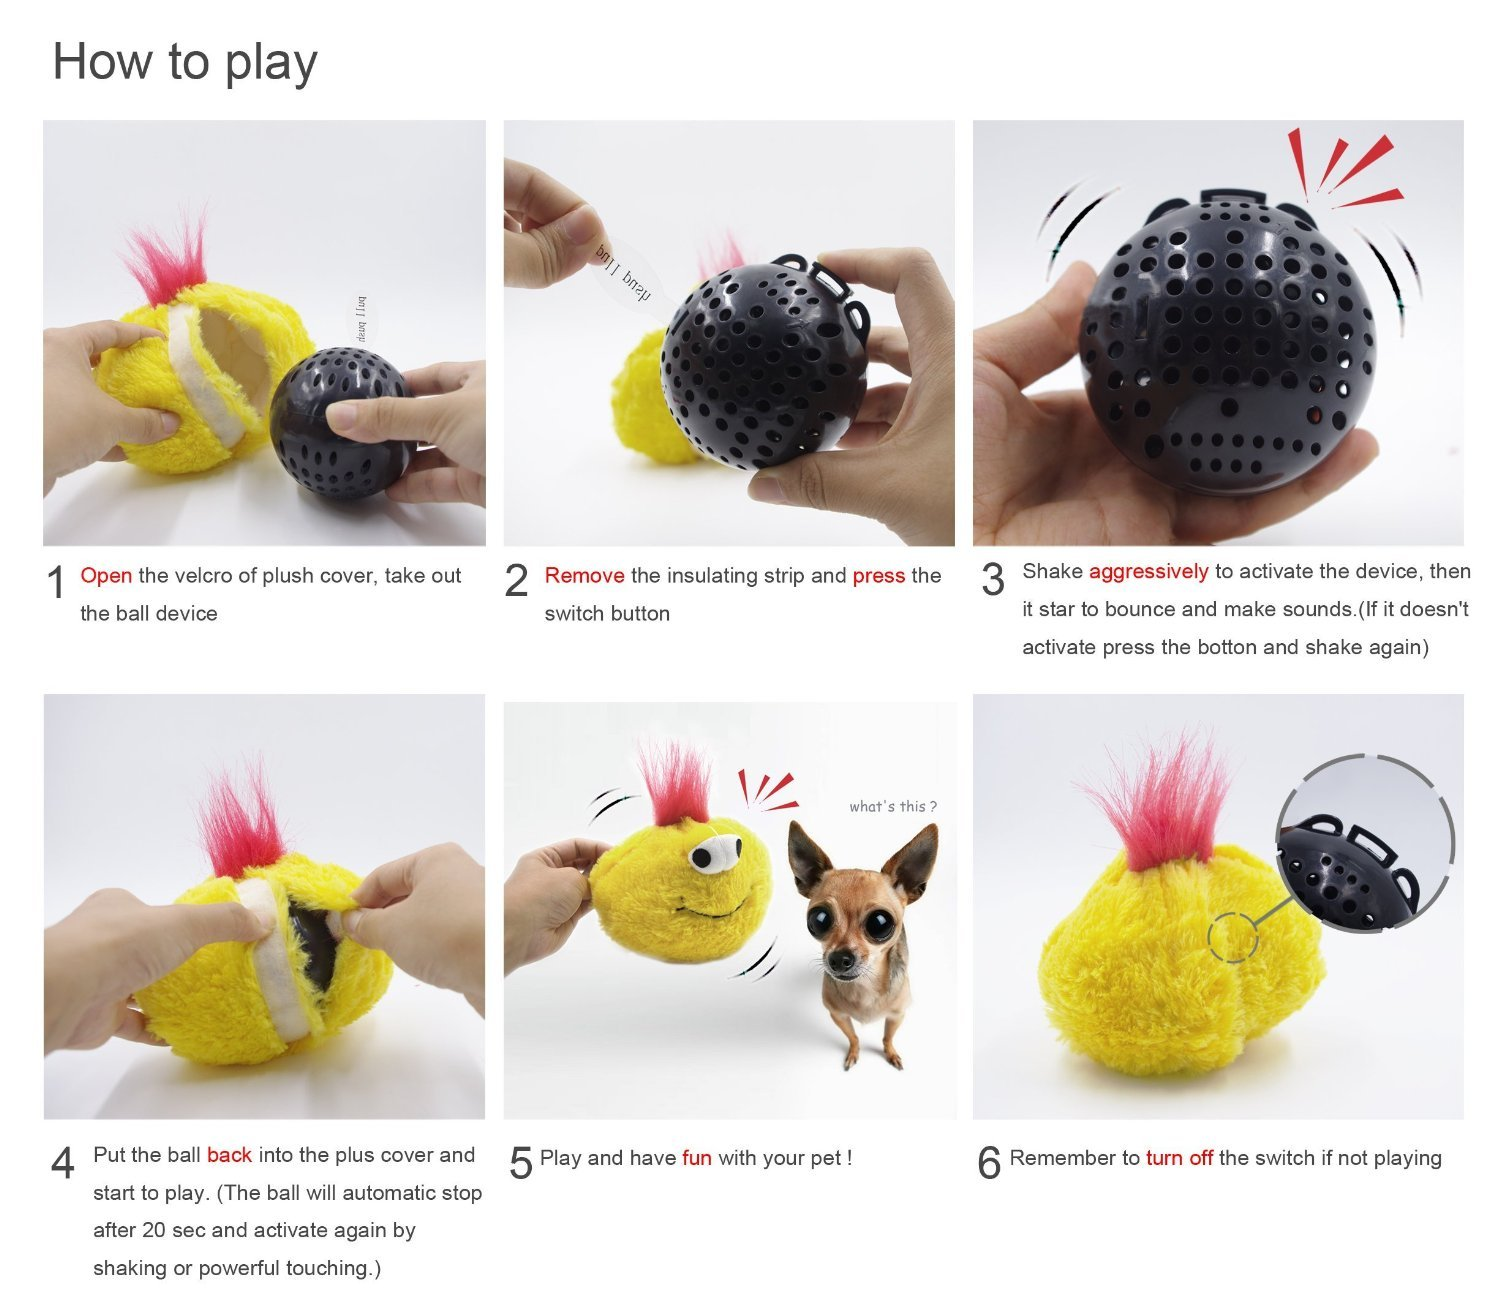 Jhua Squeaky Plush Chicken Dog Toy Bouncing Ball Talking Switch Bounce Produced On Press Electronic Jumping Interactive Doggie Cat Toys For Boredom 5 Inches Yellow Pet